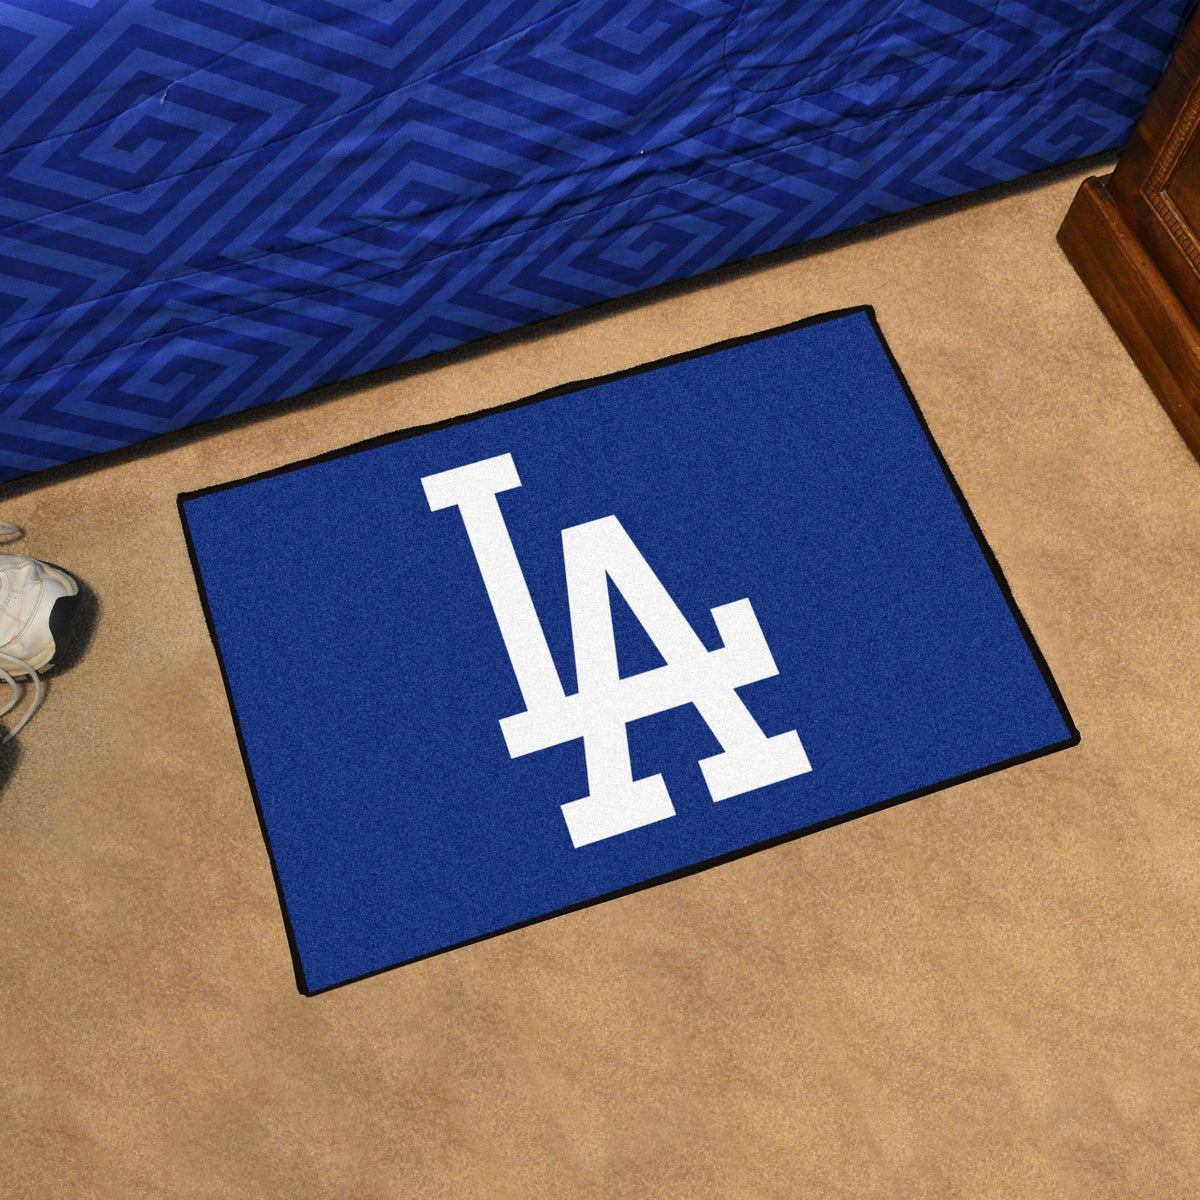 MLB - Starter Mat MLB Mats, Rectangular Mats, Starter Mat, MLB, Home Fan Mats Los Angeles Dodgers 3